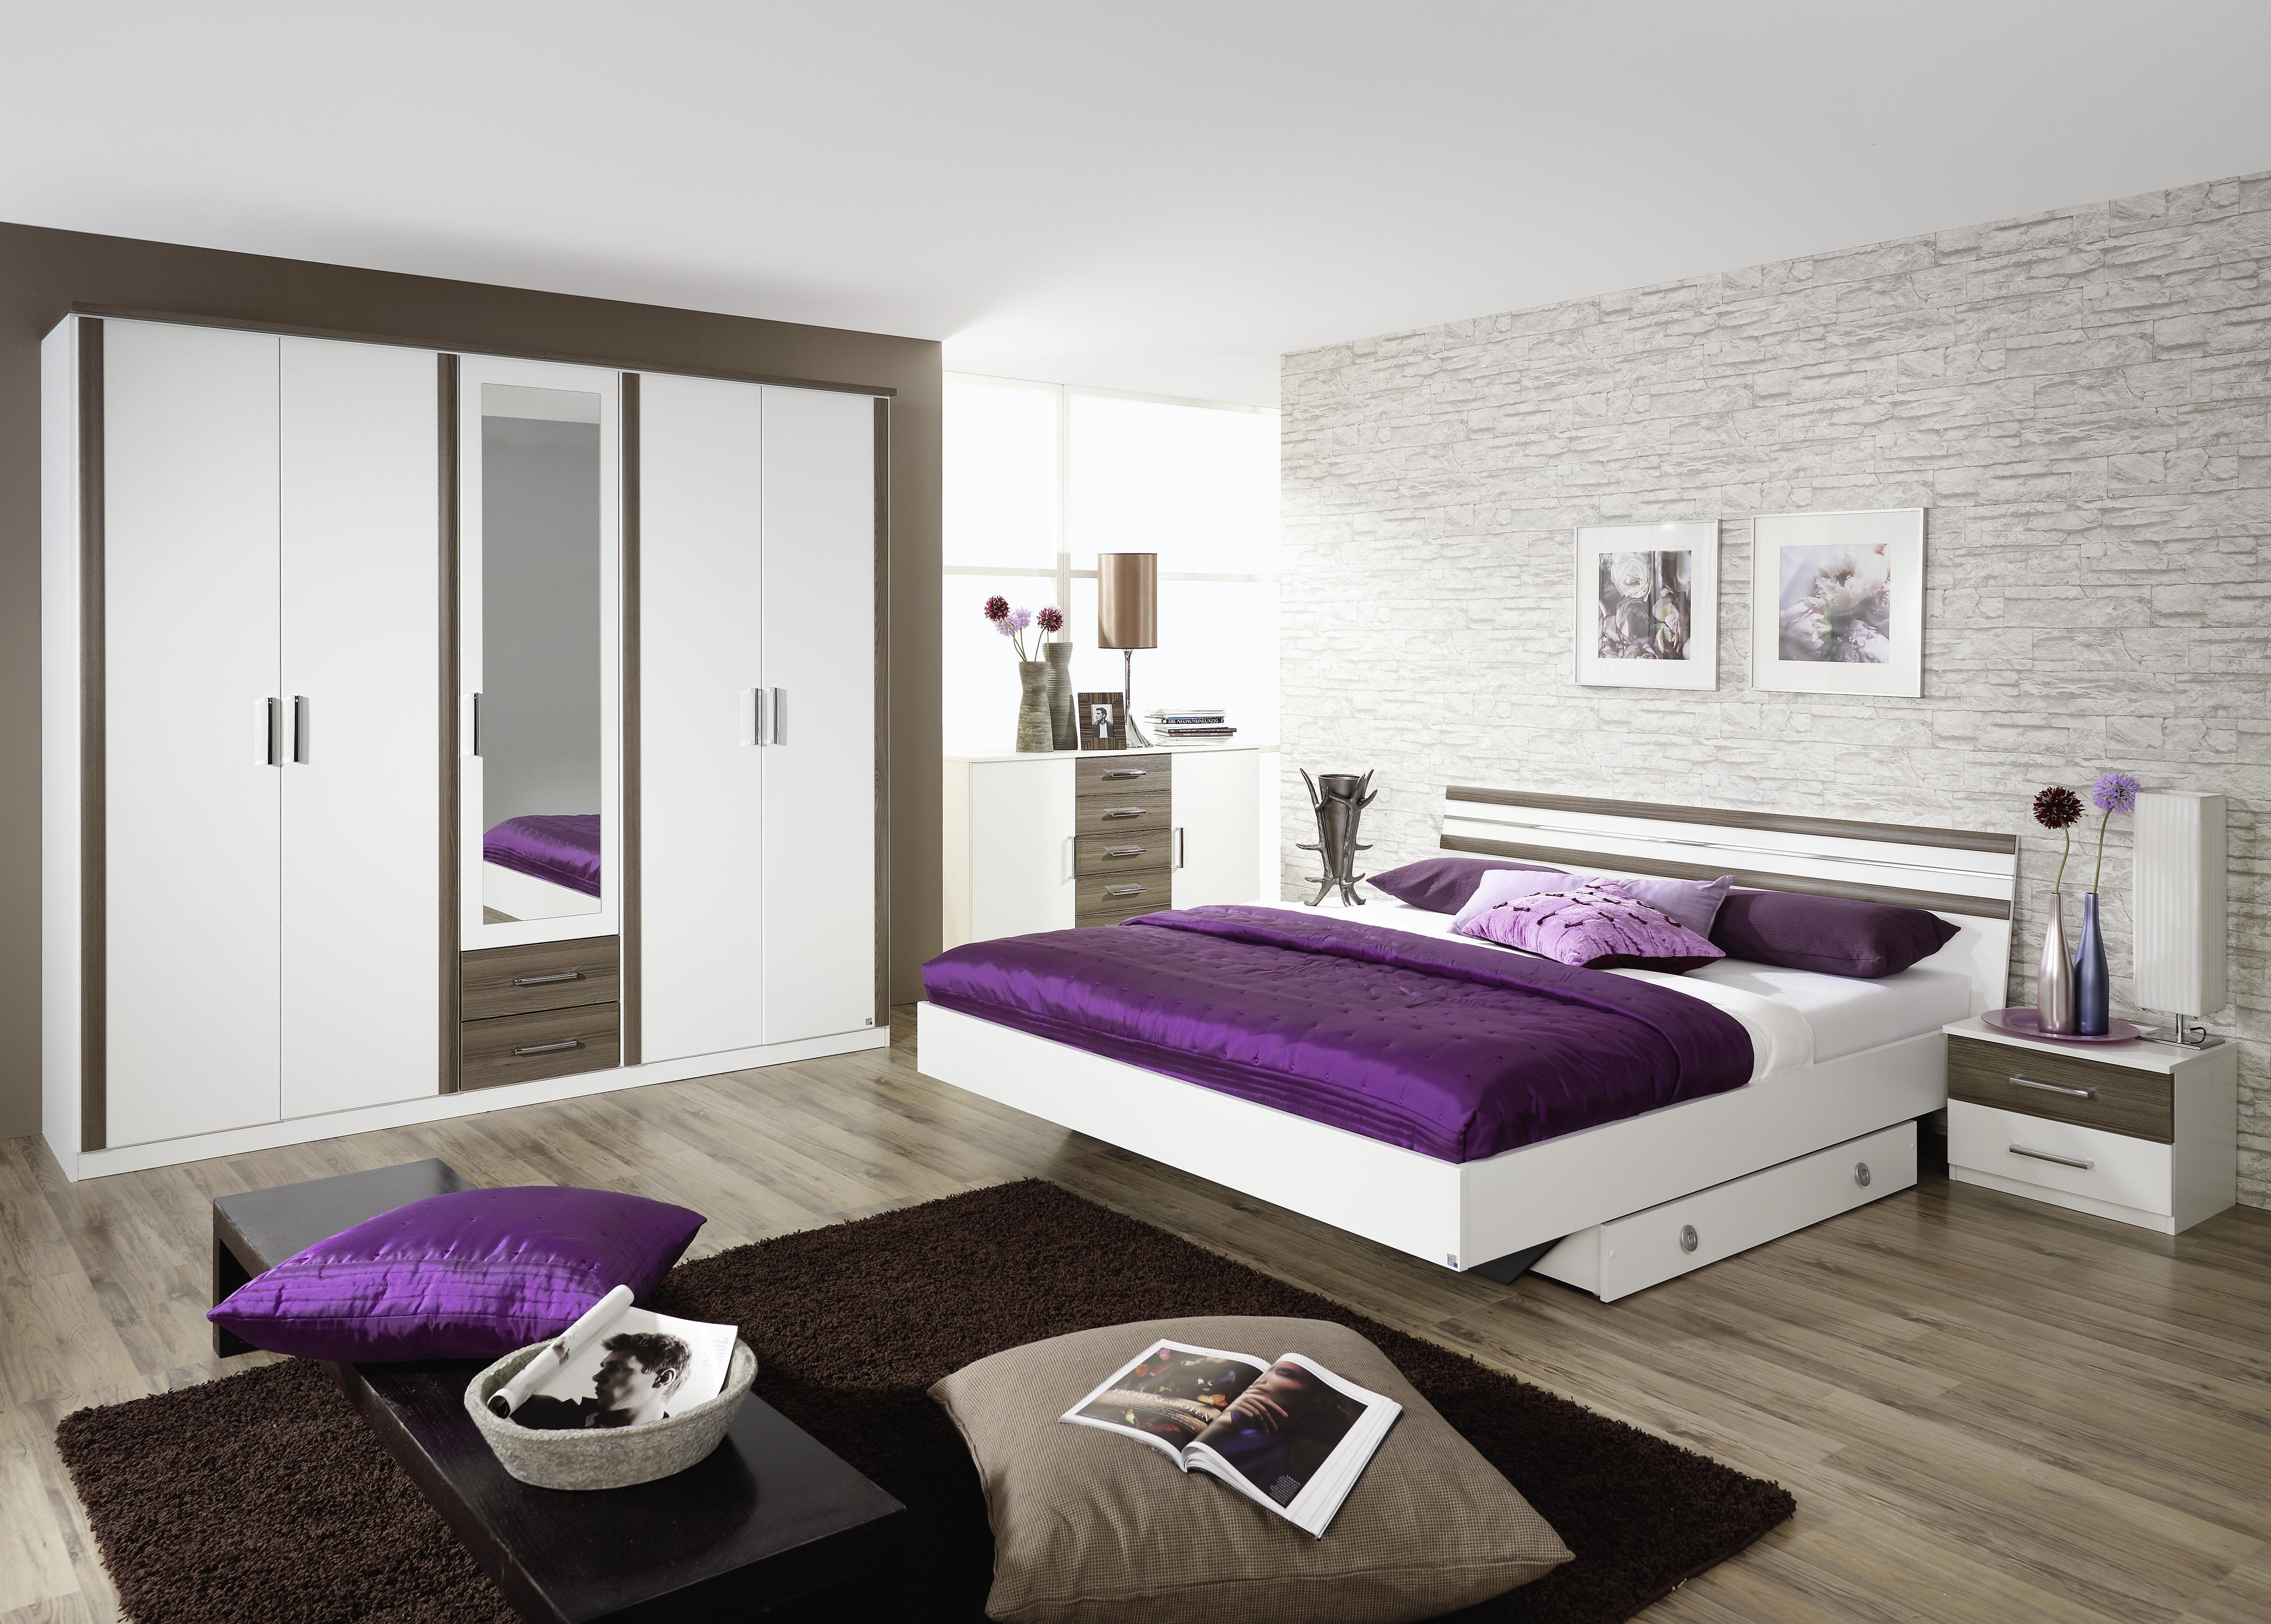 Am nagement chambre contemporaine - Modele de chambre design ...